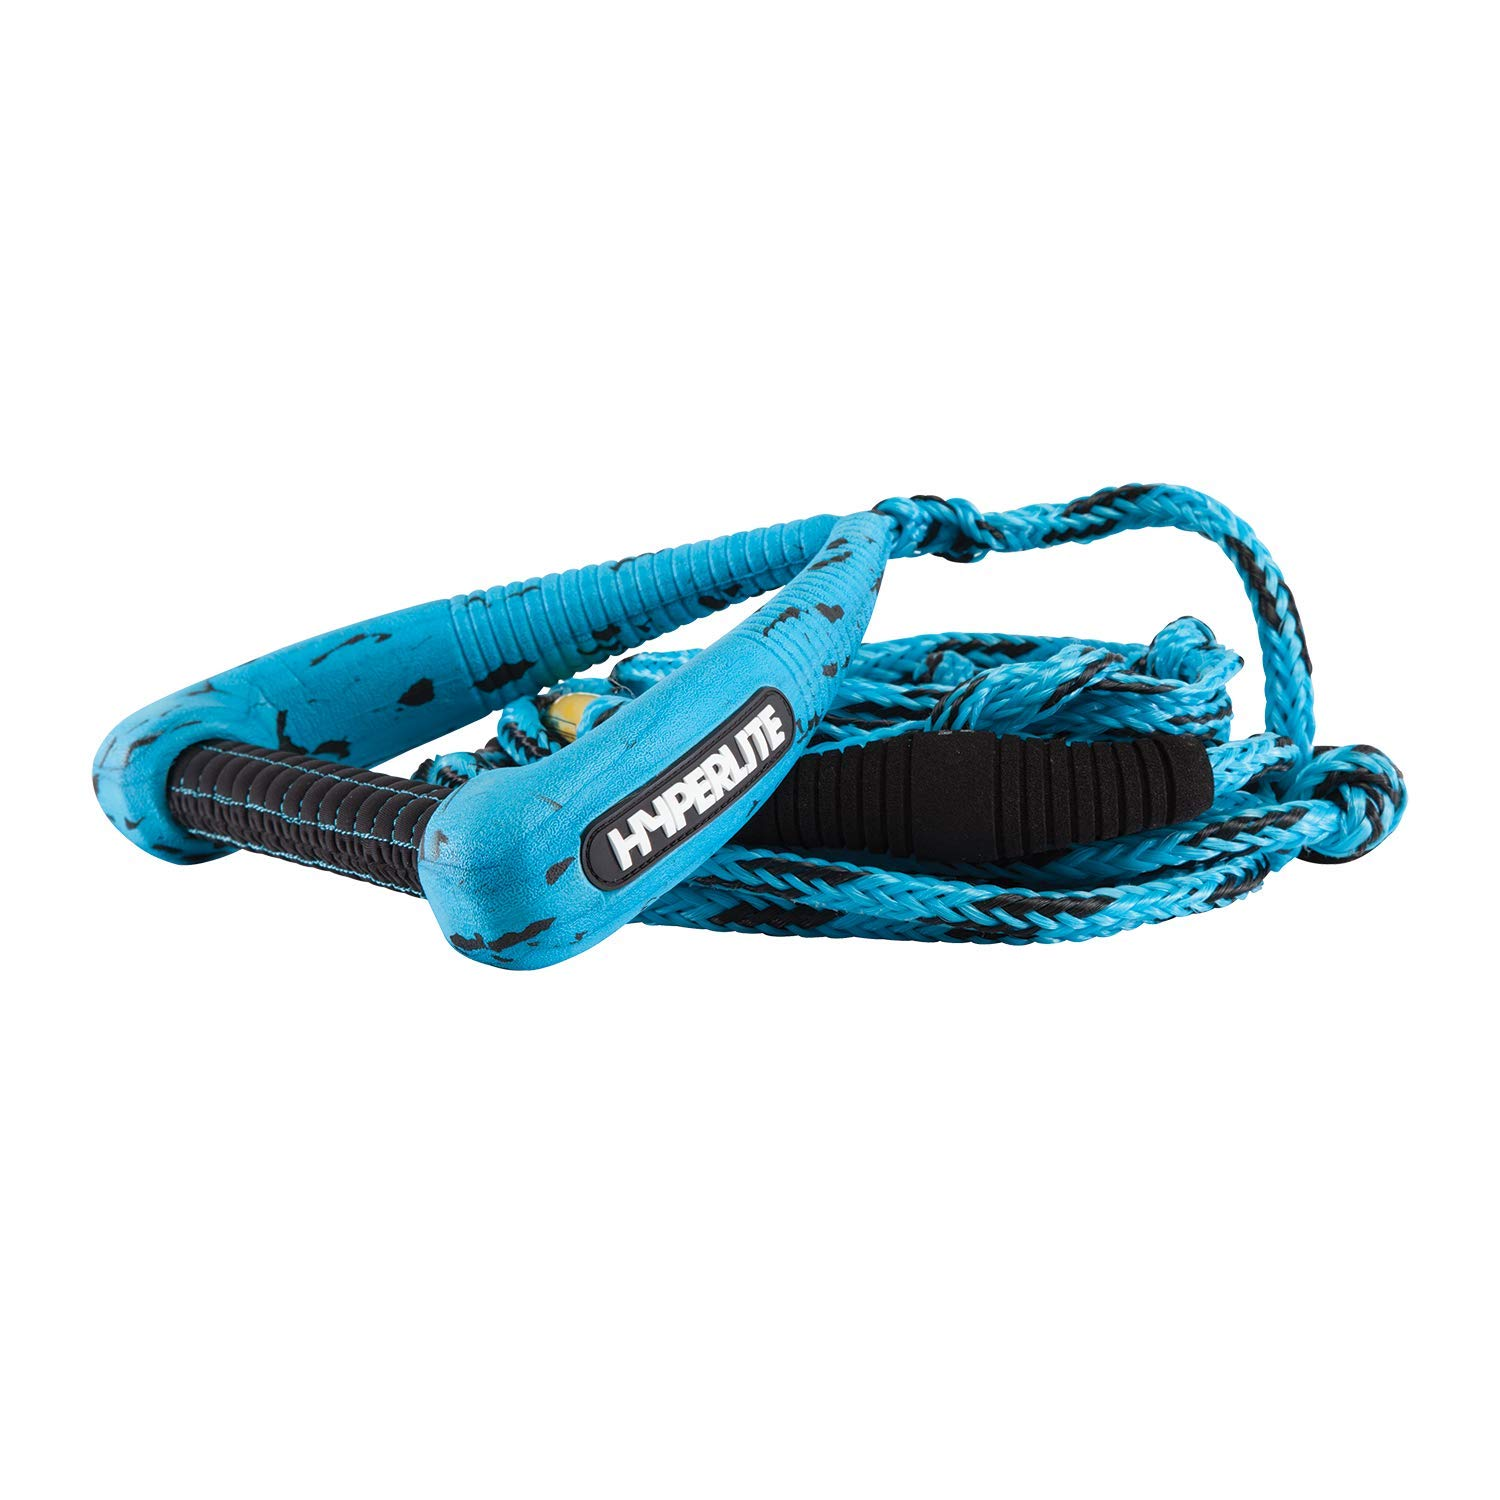 Hyperlite 25' Pro Surf Rope with Wakeboard Waterski Handle Blue by Hyperlite